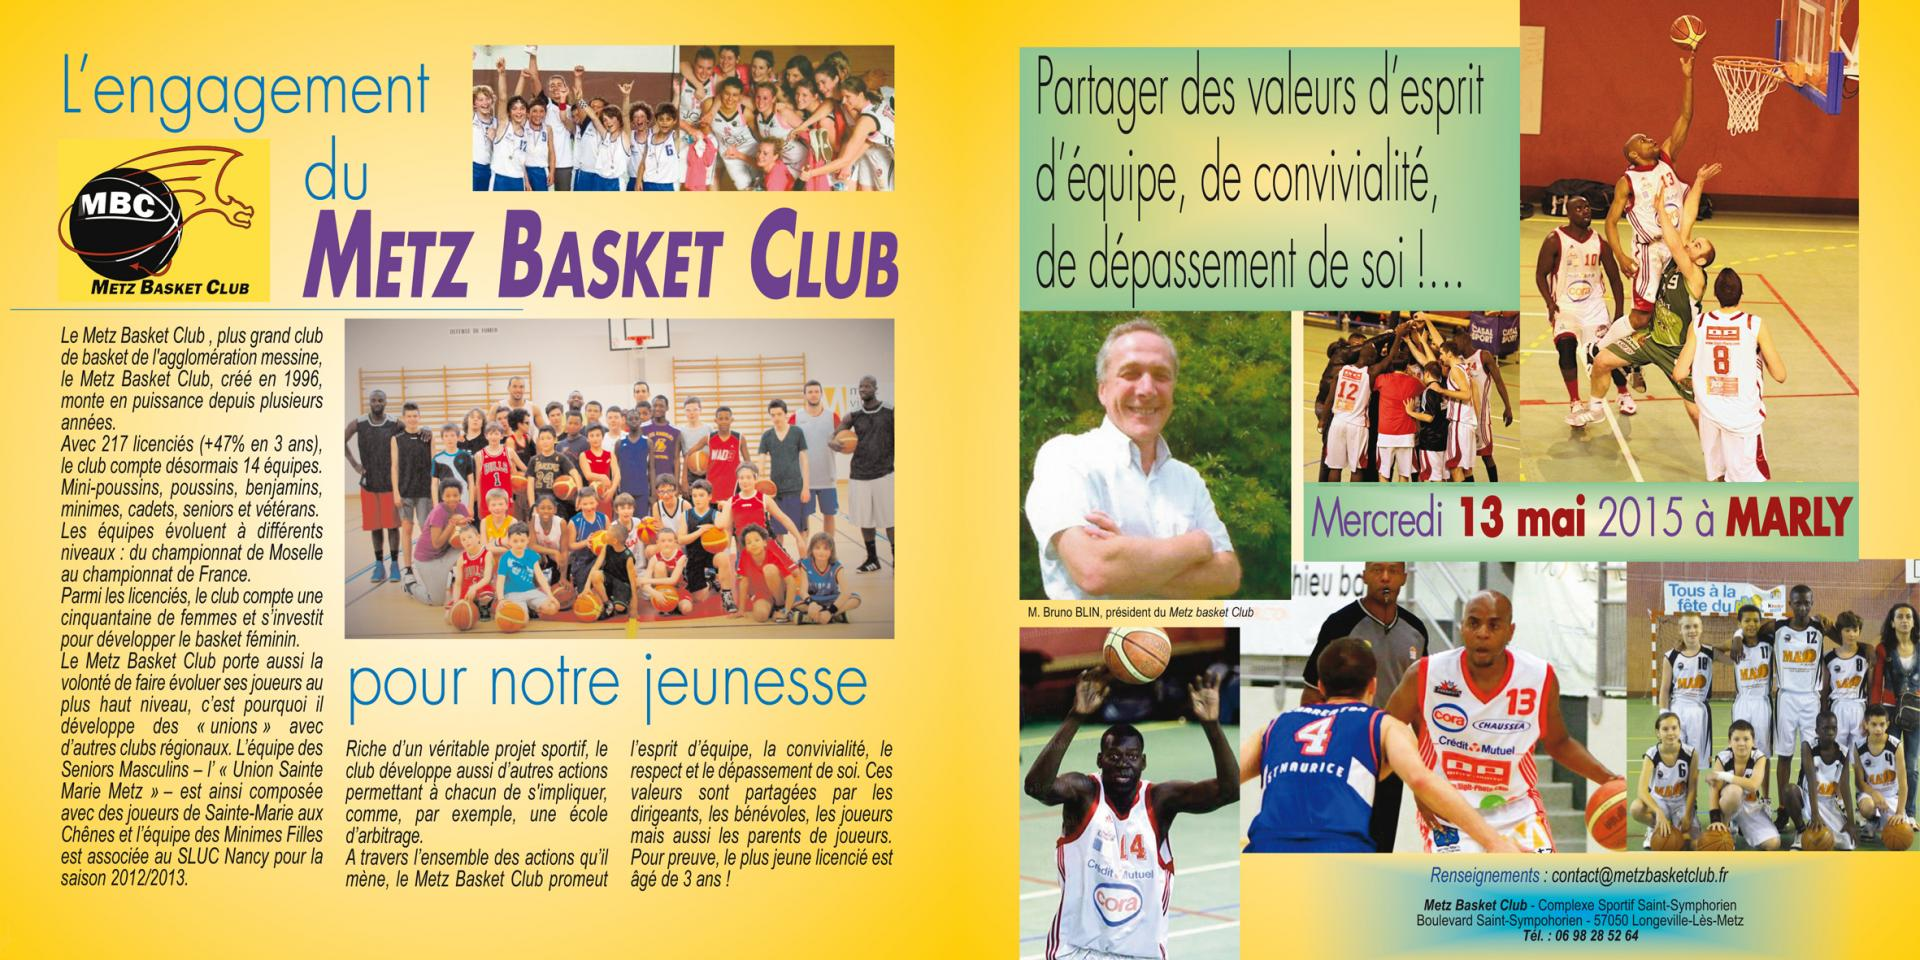 Metz baskett